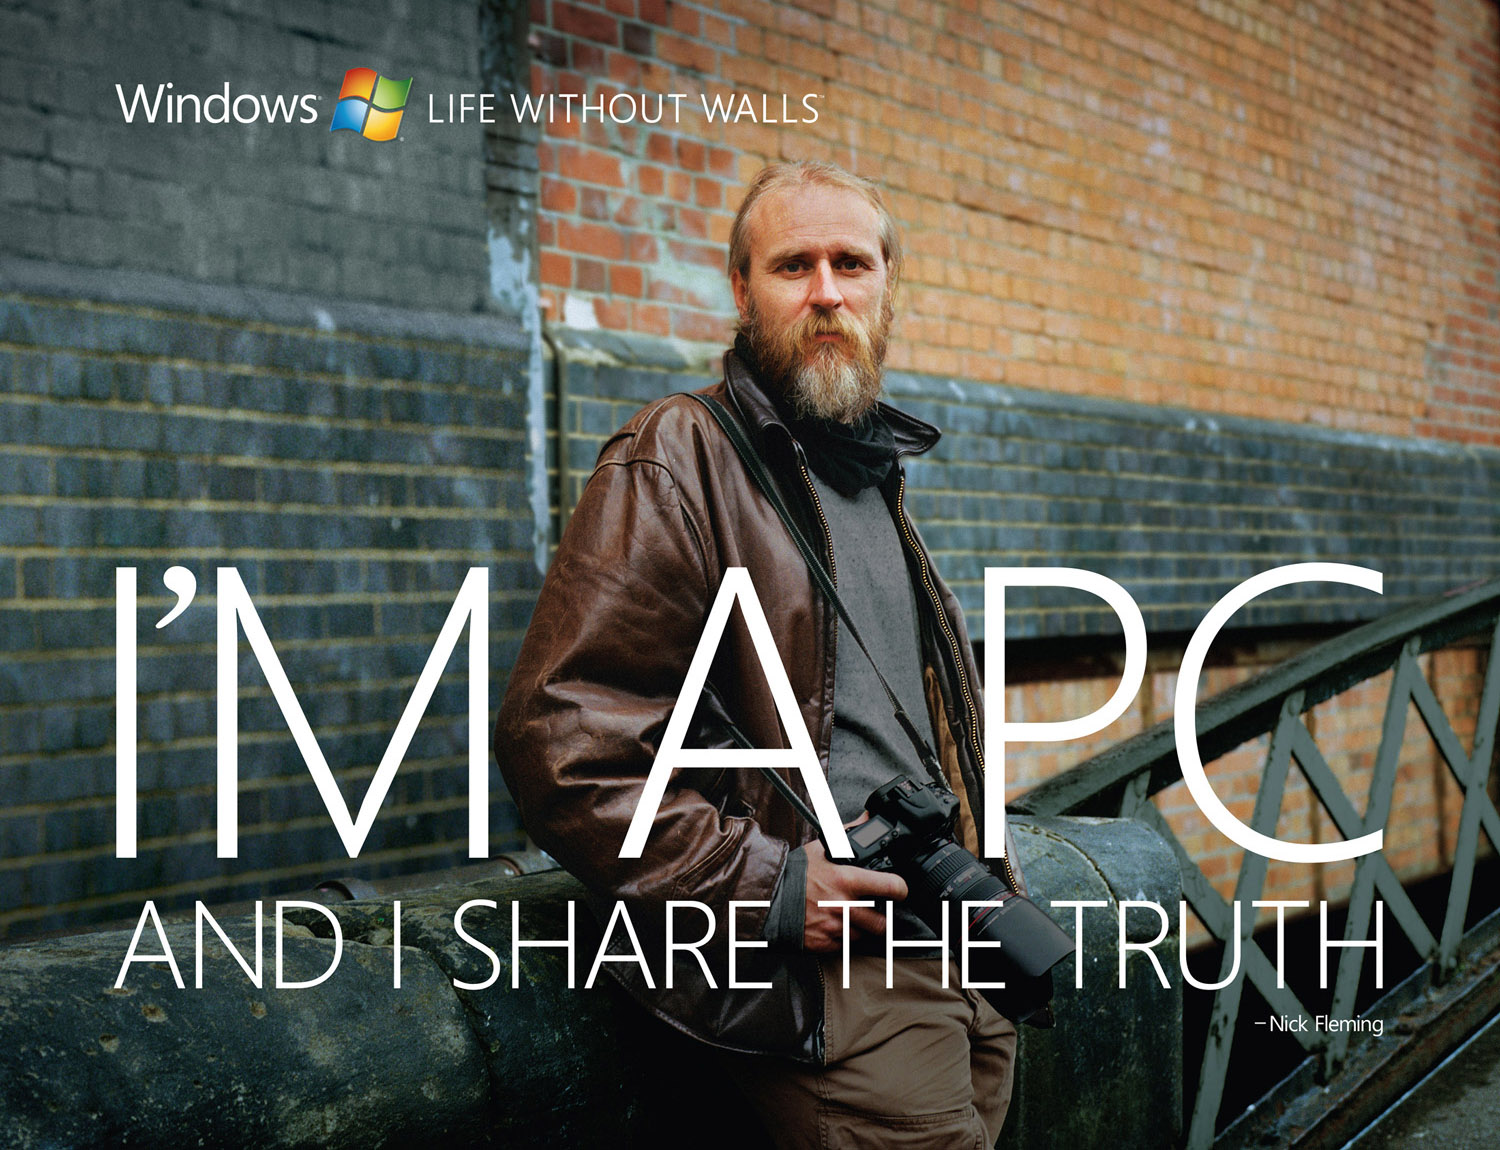 Microsoft, I'm a PC and I share the truth. - Nick Fleming , © harlan erskine